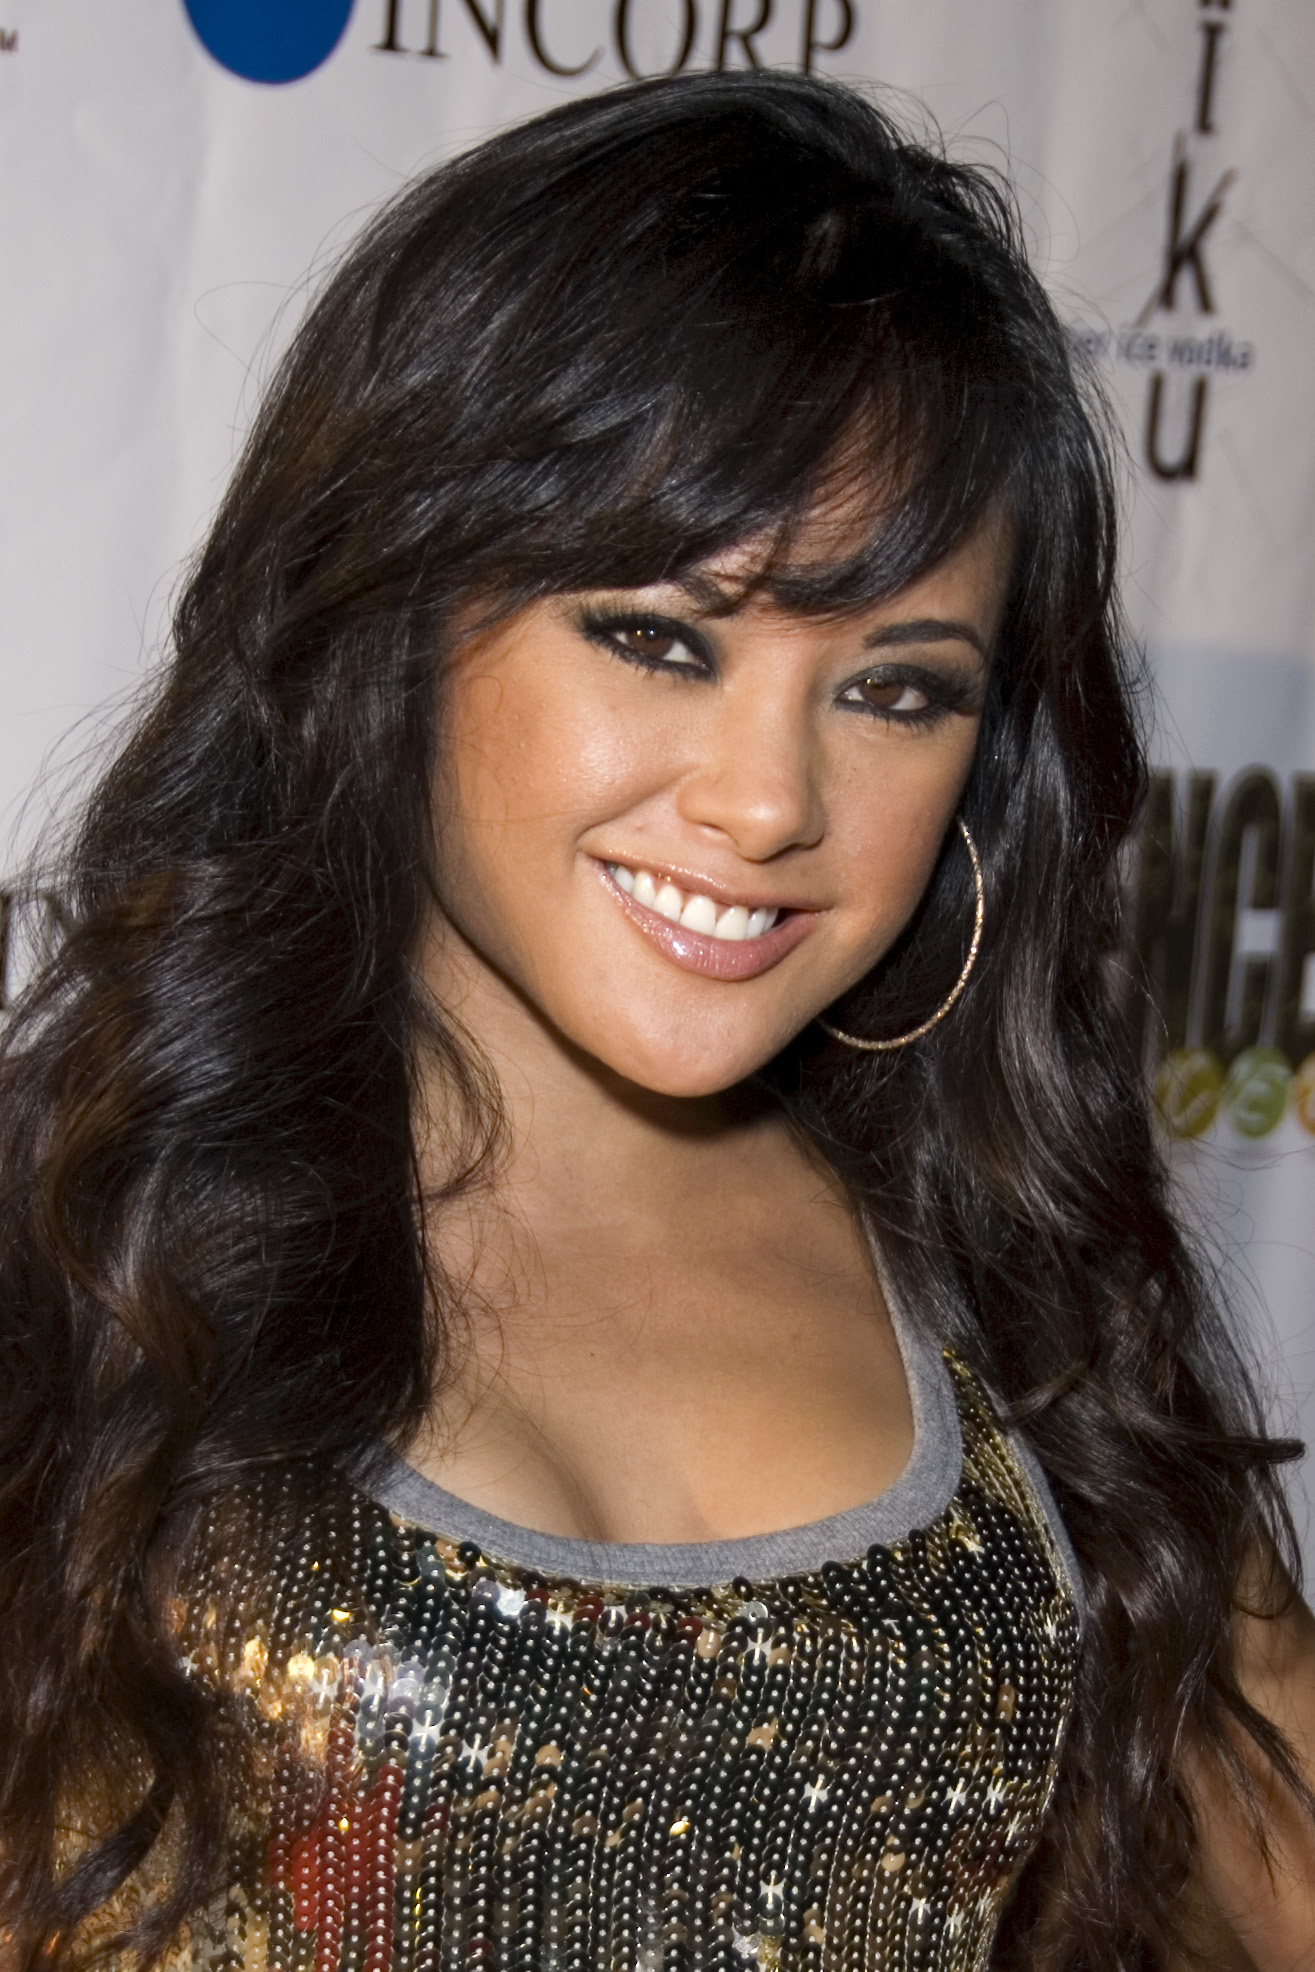 http://upload.wikimedia.org/wikipedia/commons/6/64/Kaylani_Lei_2007.jpg